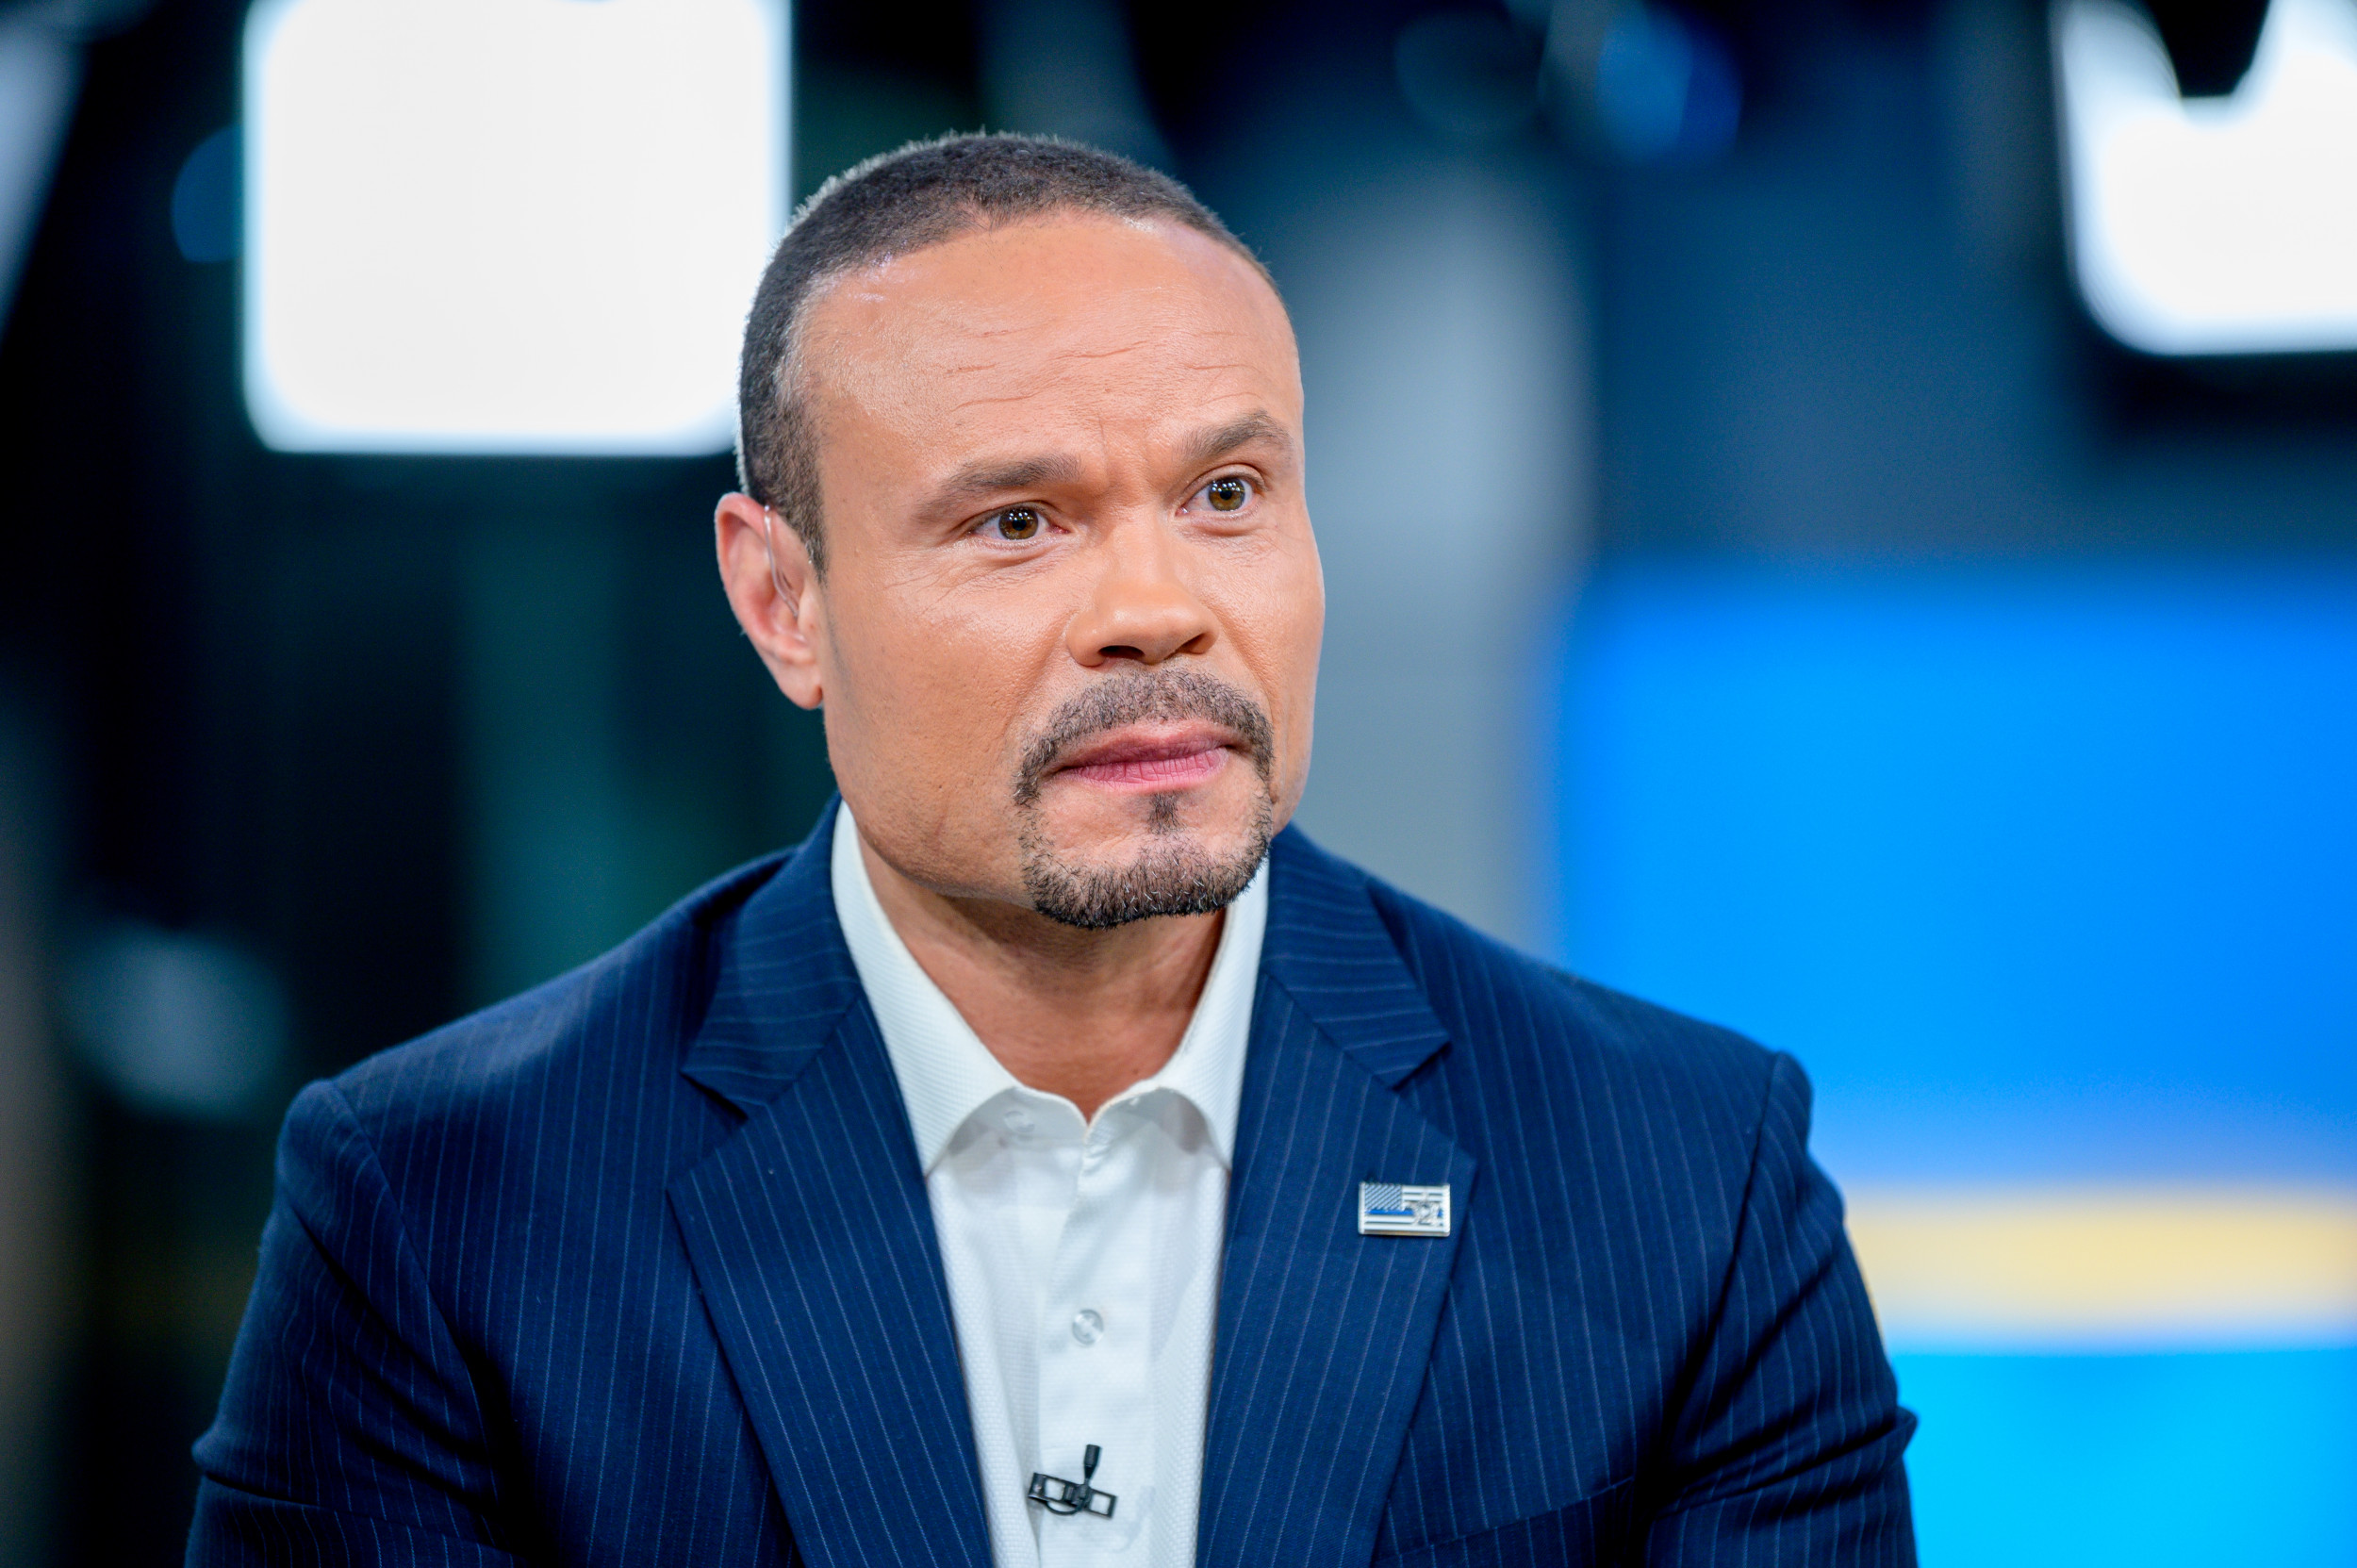 Mark Levin, Dan Bongino Among Talk Radio Stars Warned to Stop Stolen Election Talk by Corporate Boss